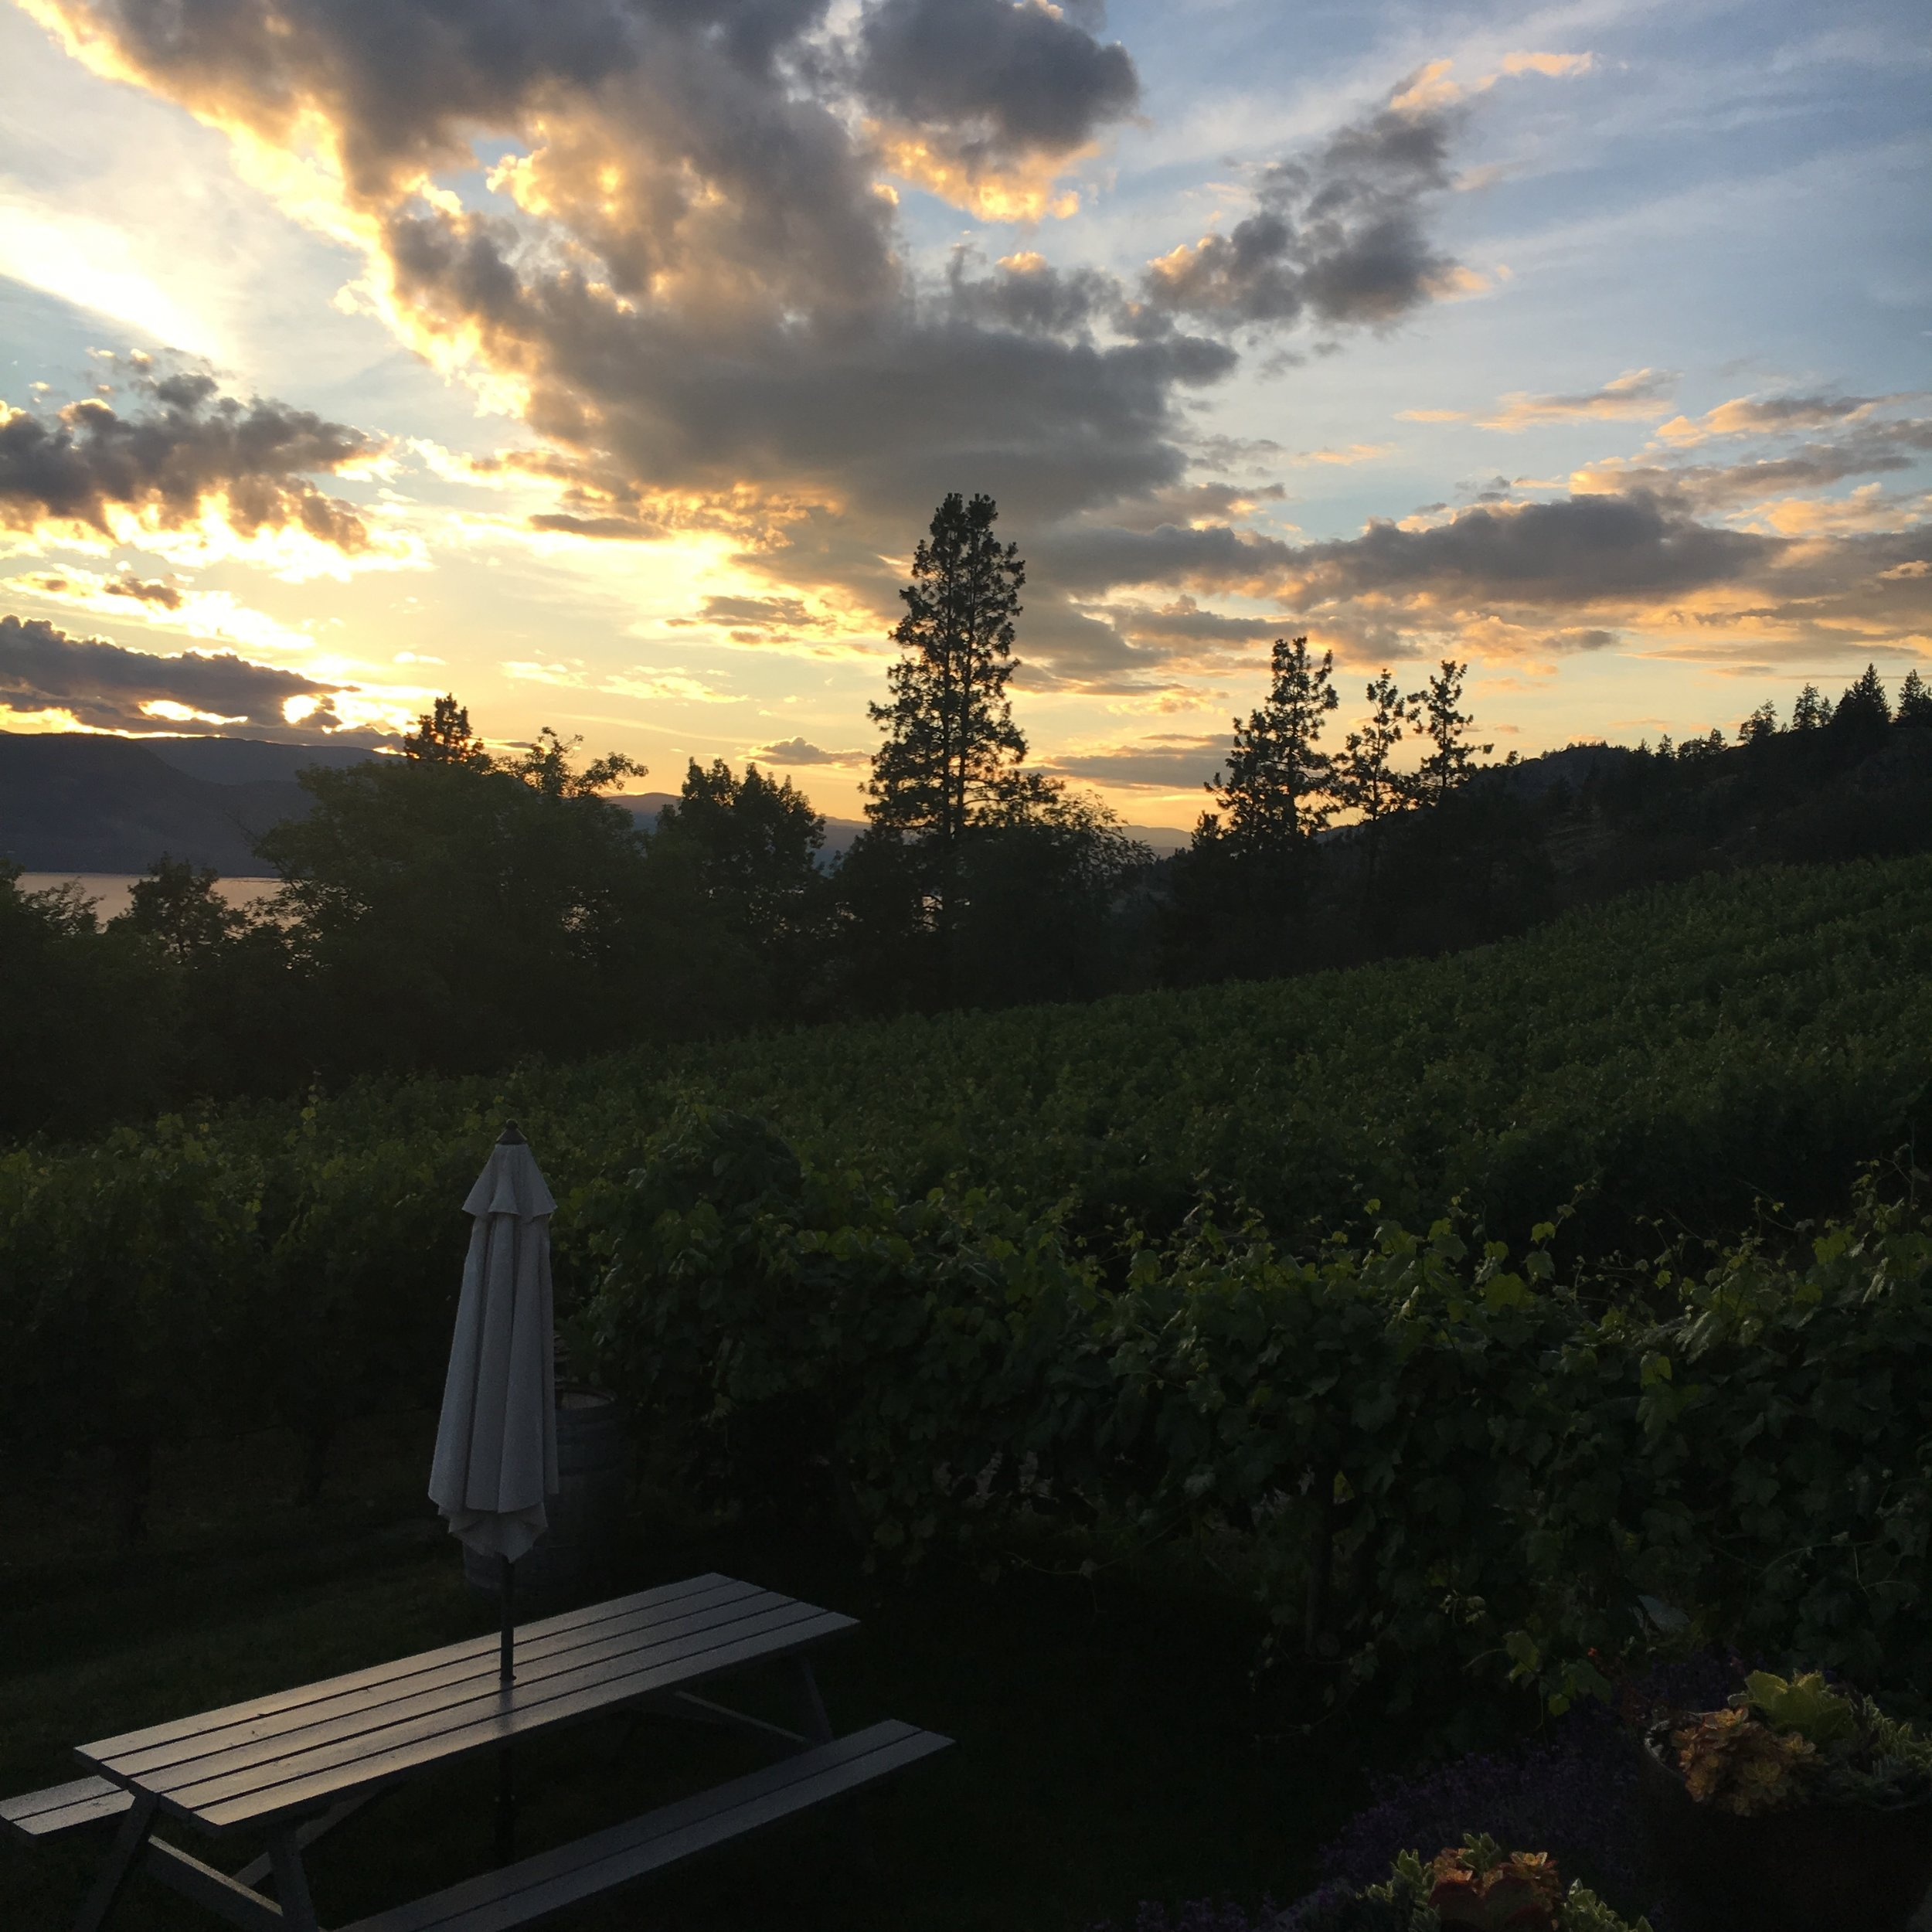 Sunset at Nichol Vineyard on the Naramata Bench